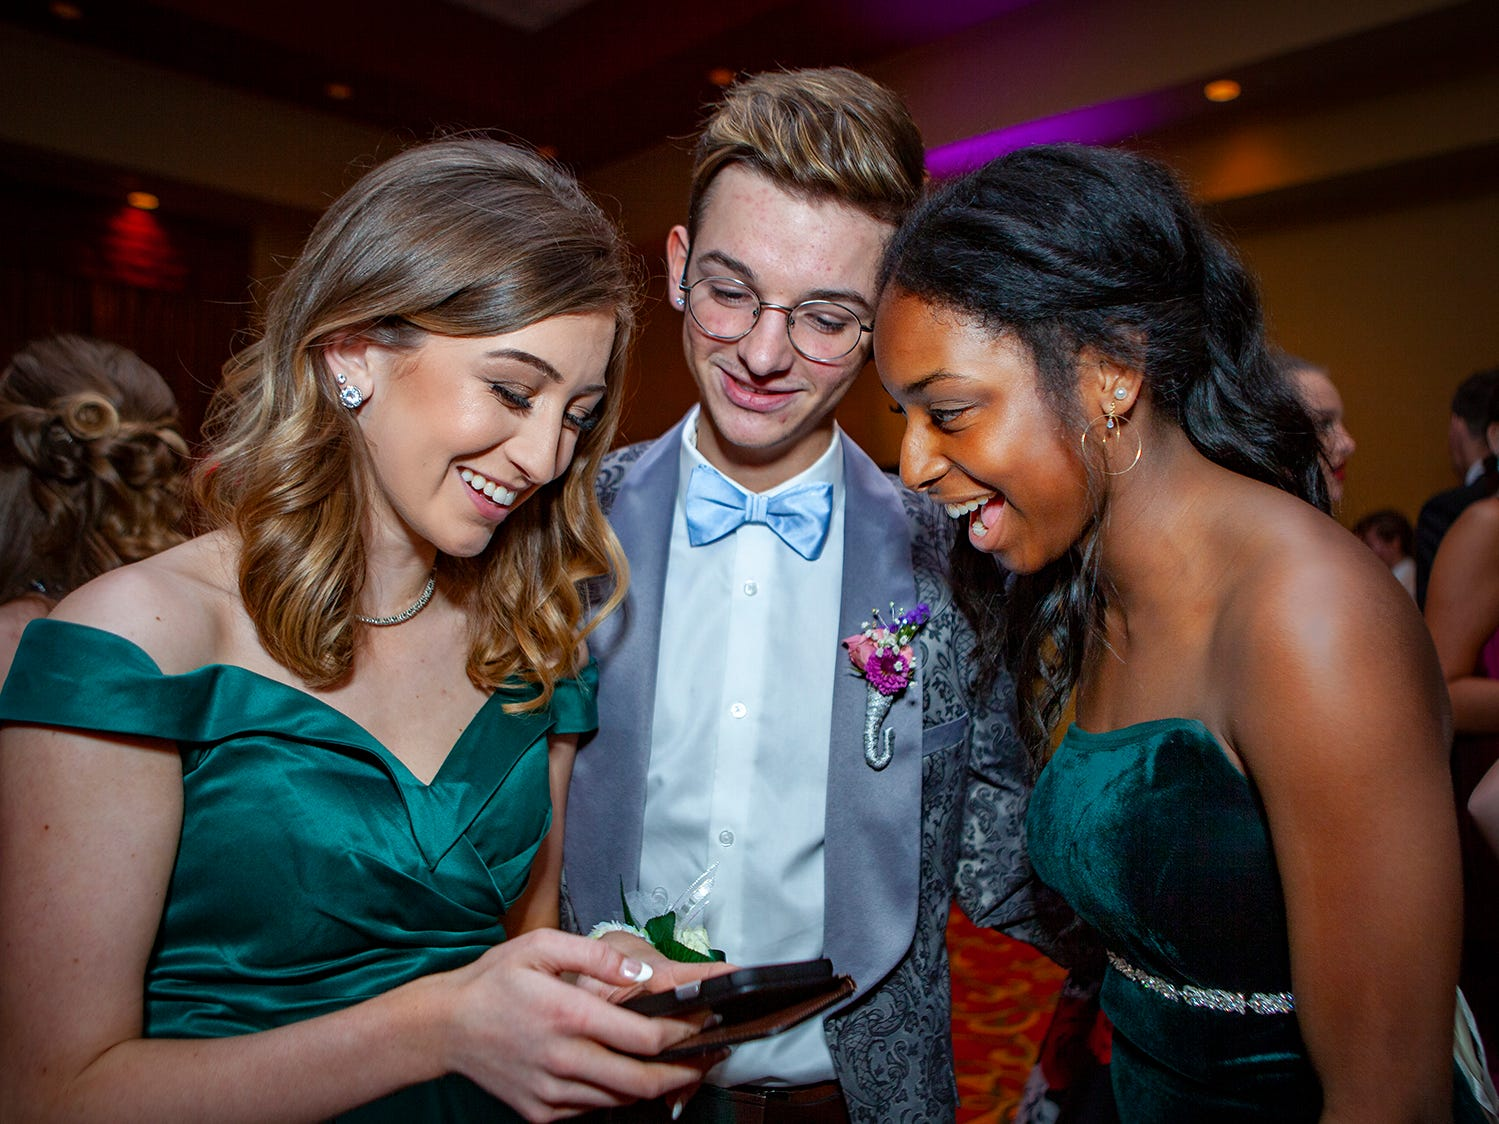 Grace Dummermuth, Landon Parton and Braelyn Clark at Central Magnet School's prom Saturday, April 6, 2019 at Embassy Suites in Murfreesboro.